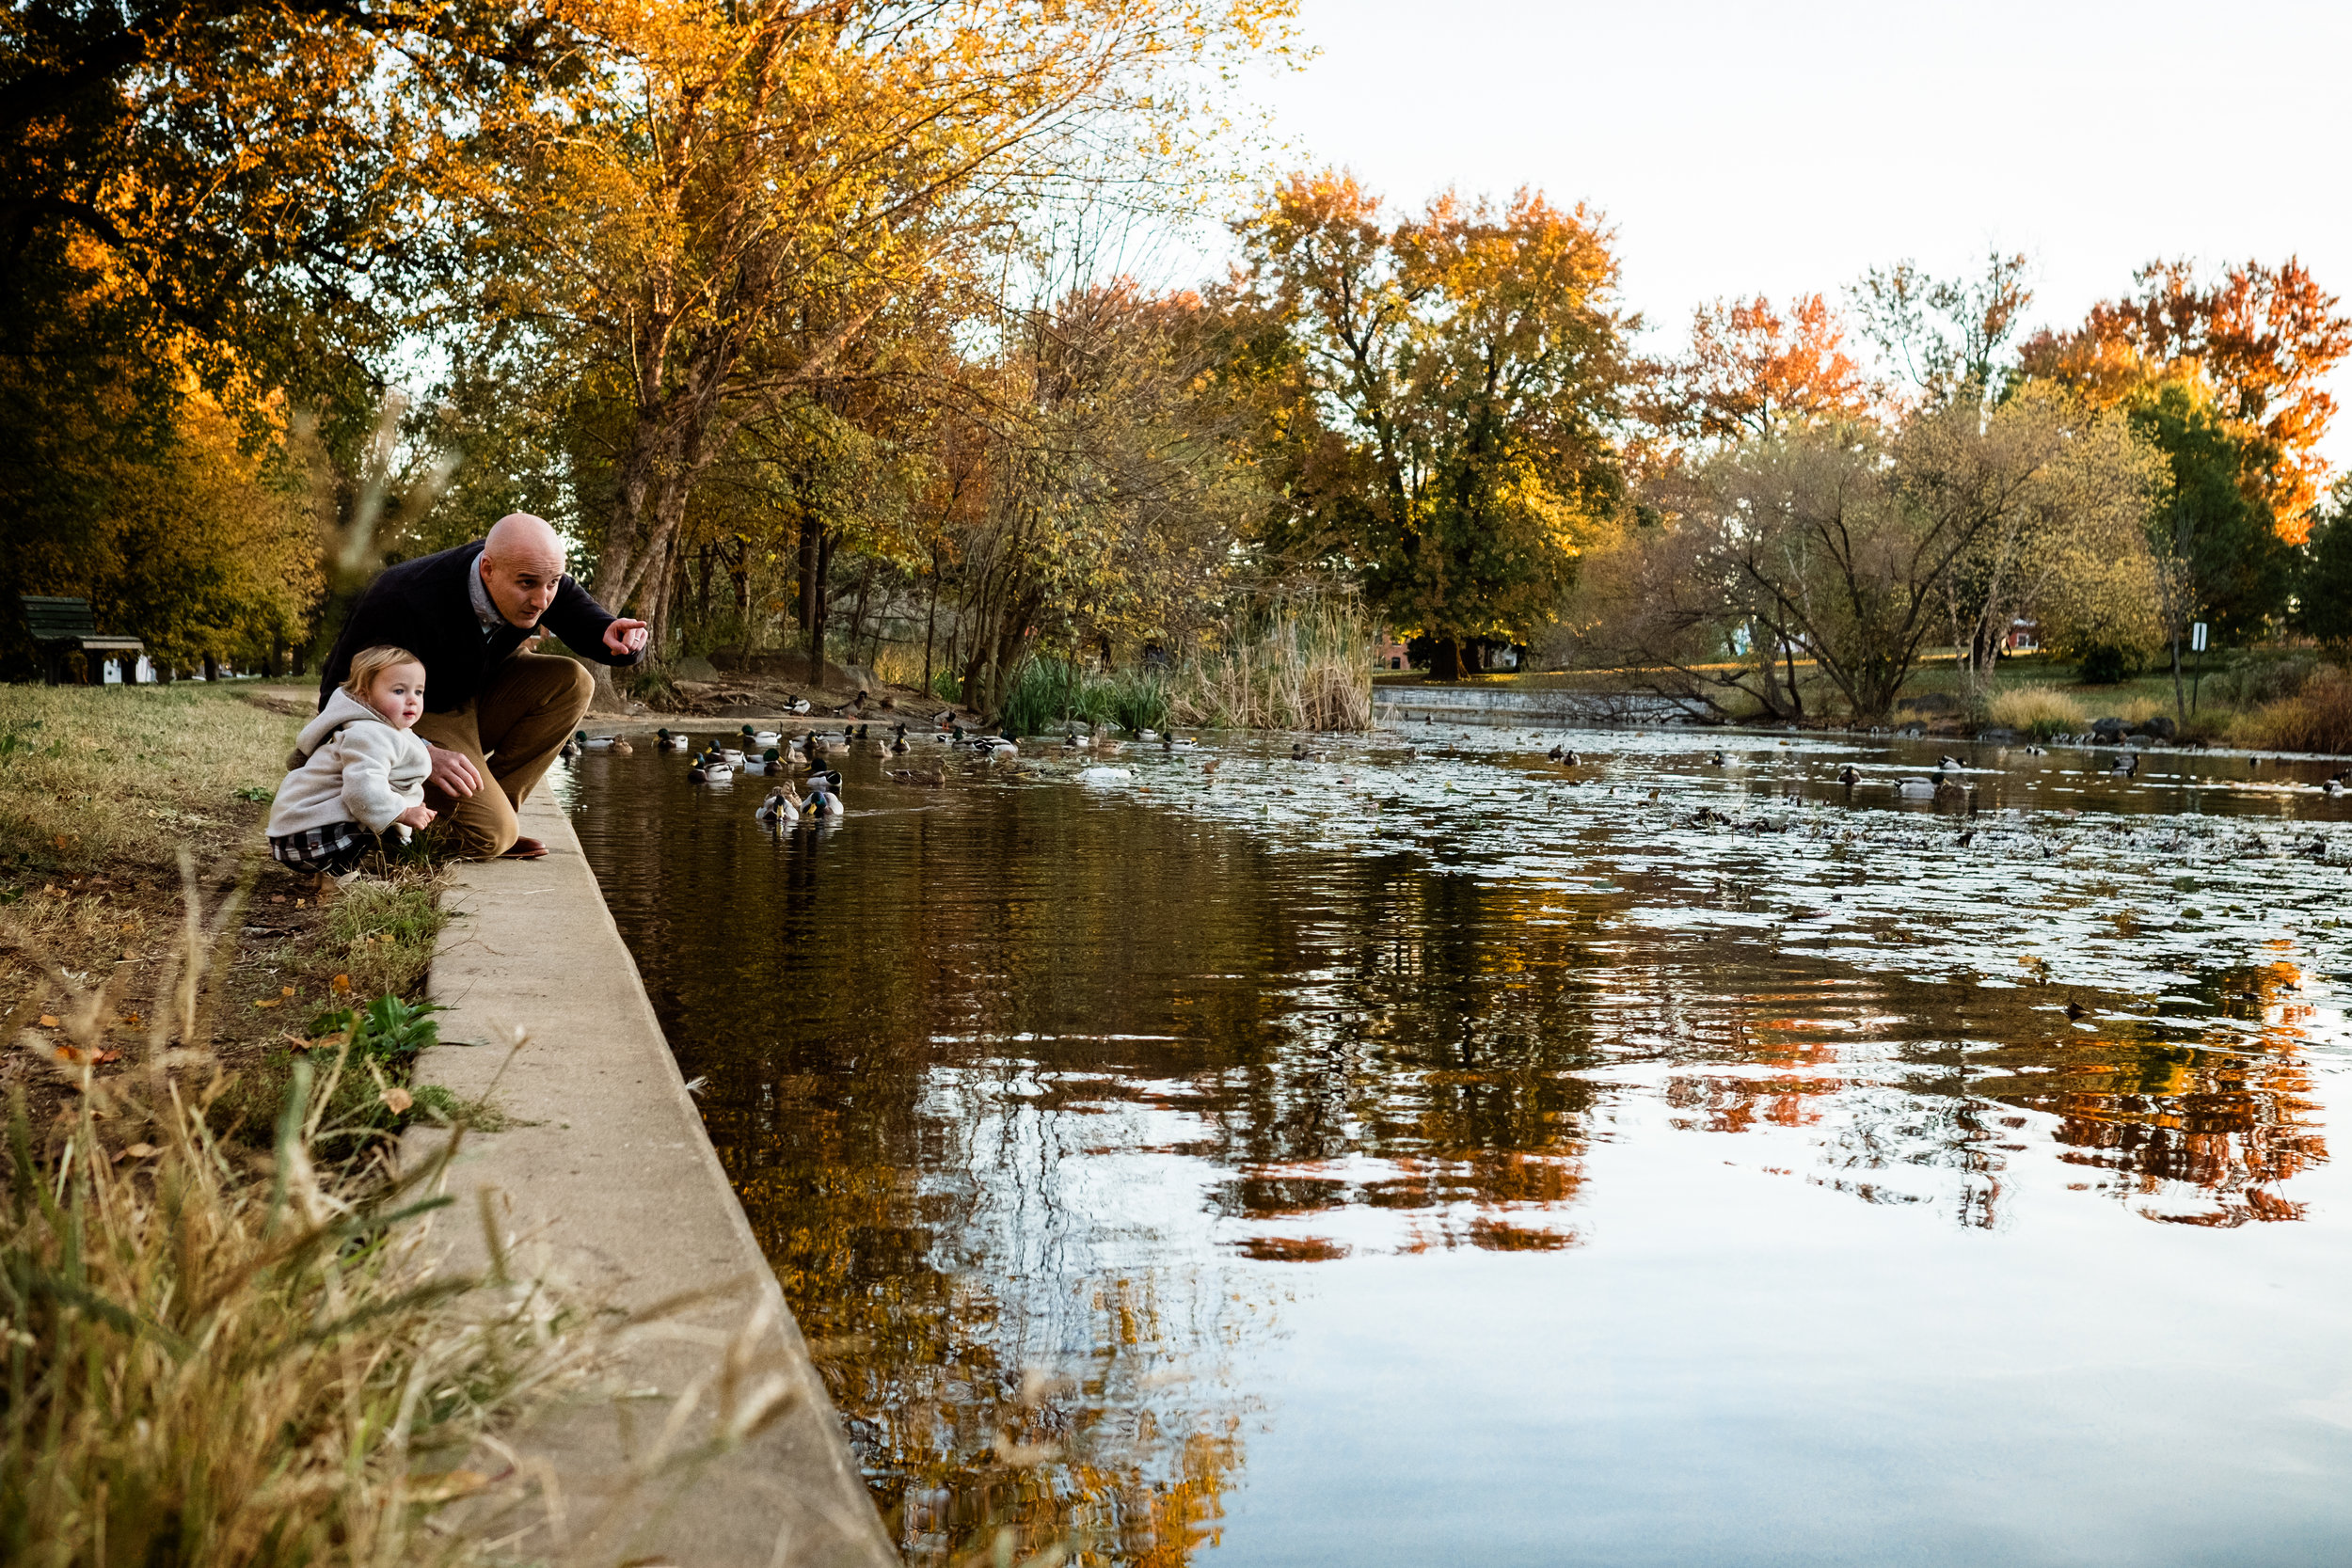 family feeding the ducks at community park pond in Baltimore, Maryland